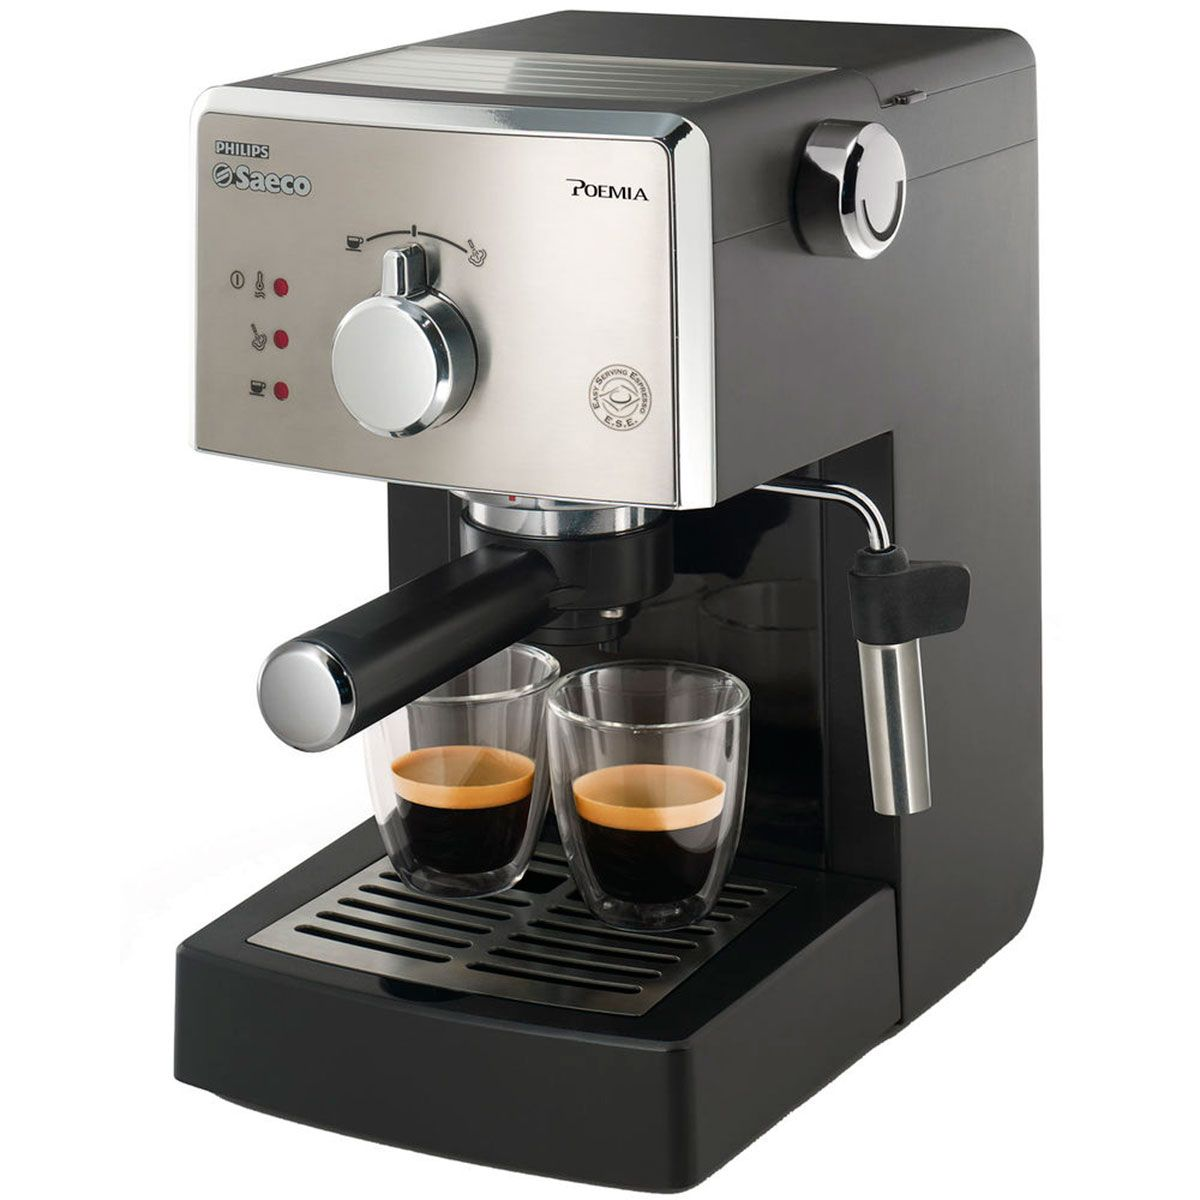 Philip Saeco Philips Saeco Poemia Hd8325 Coffee Machine Review